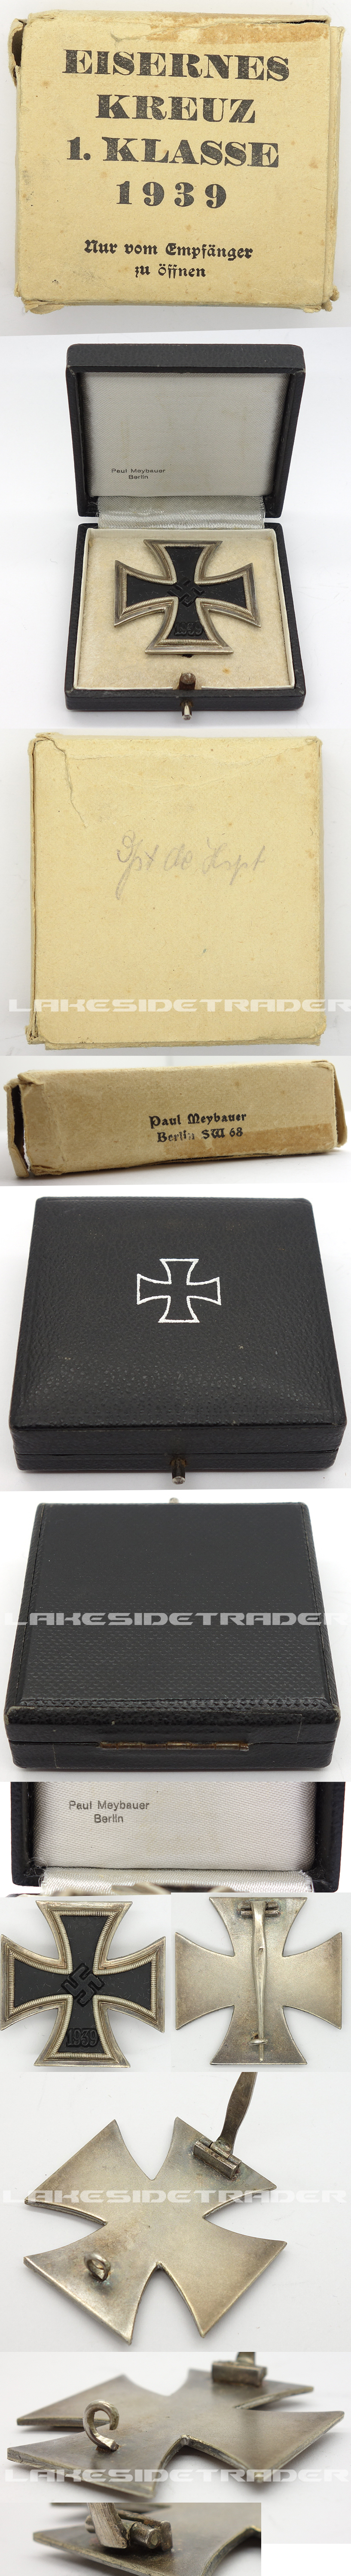 Boxed 1st Class Iron Cross 1st Class by Paul Meybauer